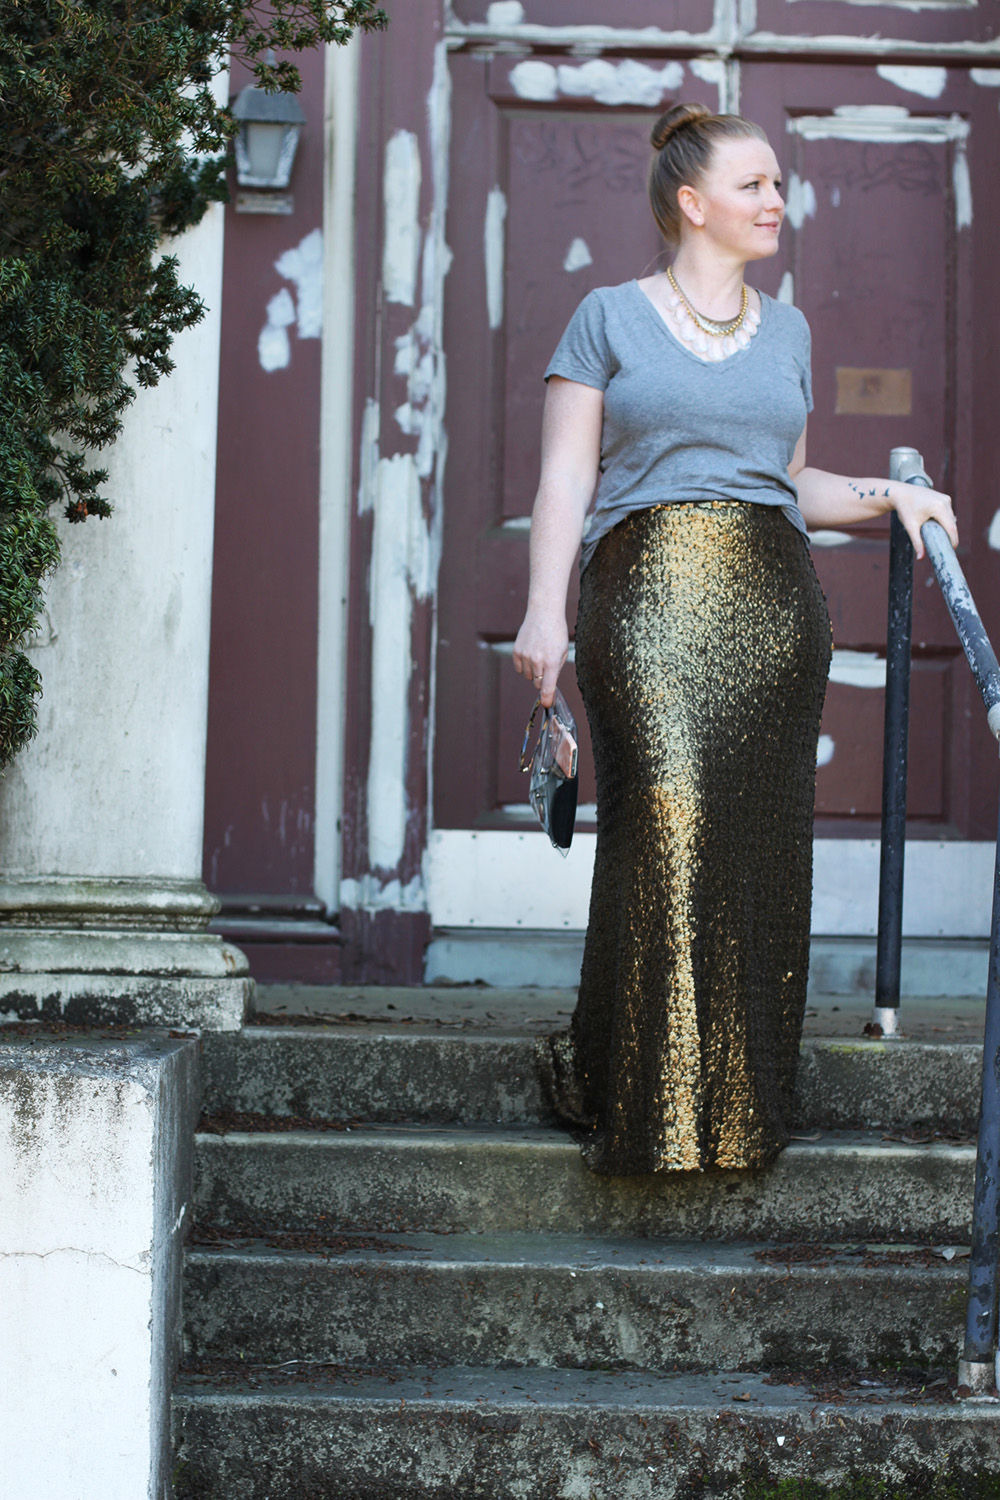 HOW TO DO CASUAL GLAM. The sequin maxi skirt is a must!